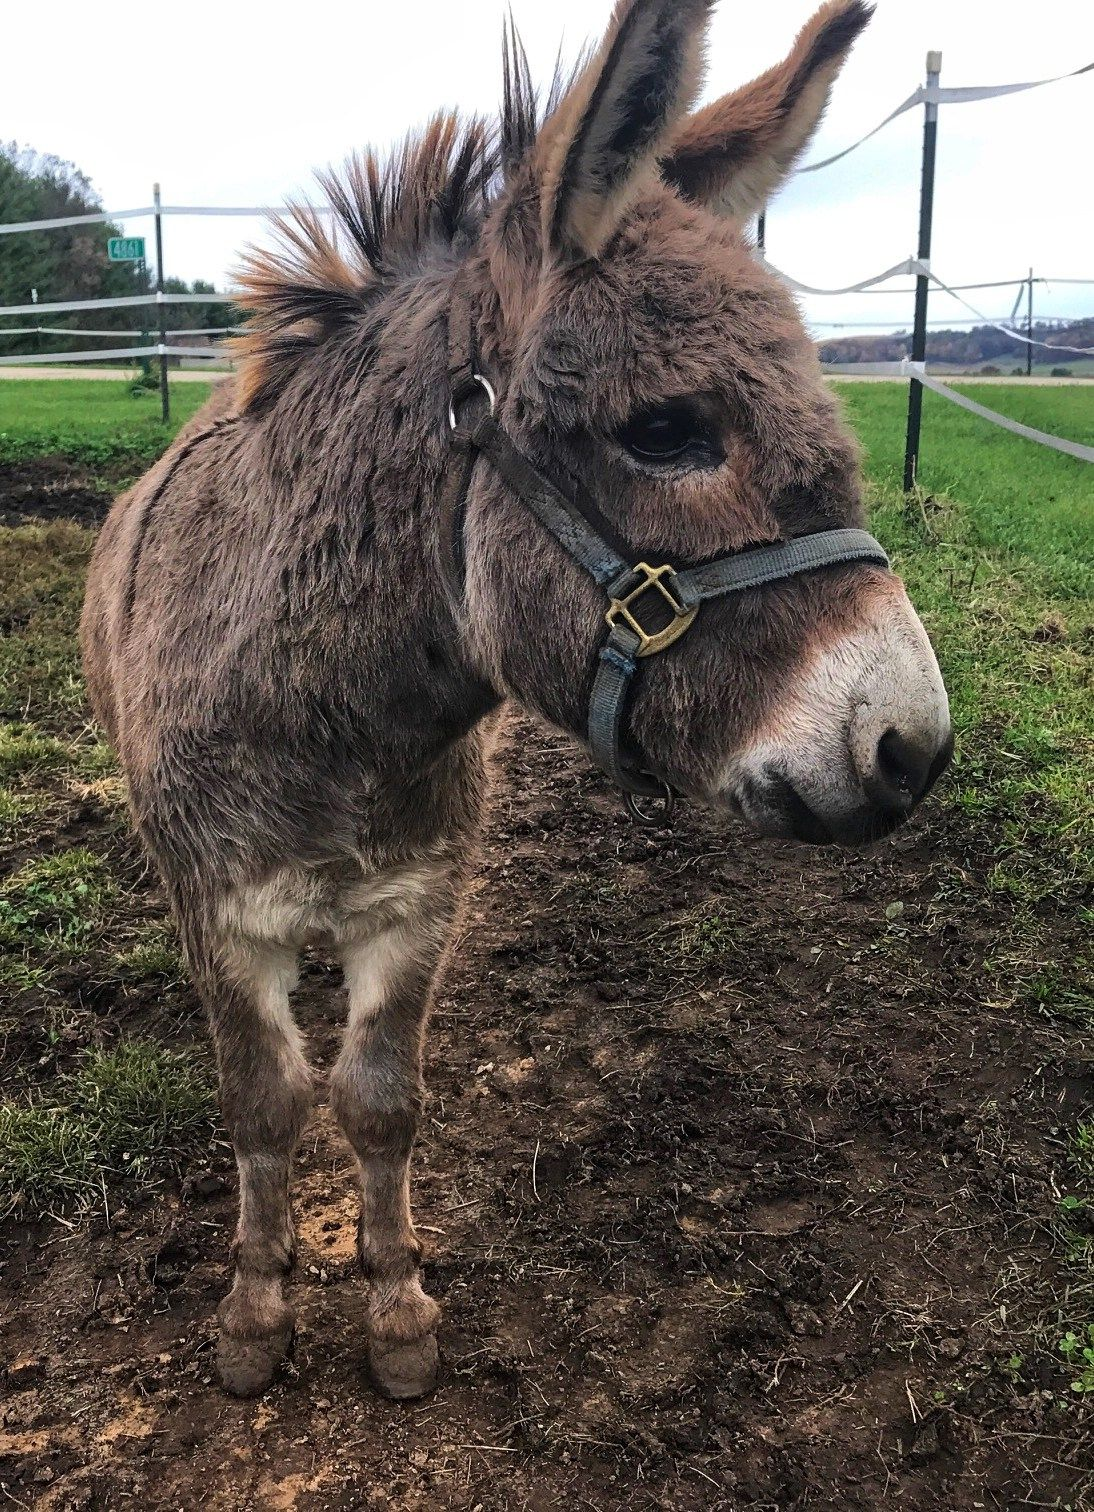 This month, I'm interviewing Lewis, a five-year-old Brazilian Donkey that lives in Black Earth, WI. Lewis is five-year-old Brazilian Donkey that loves to